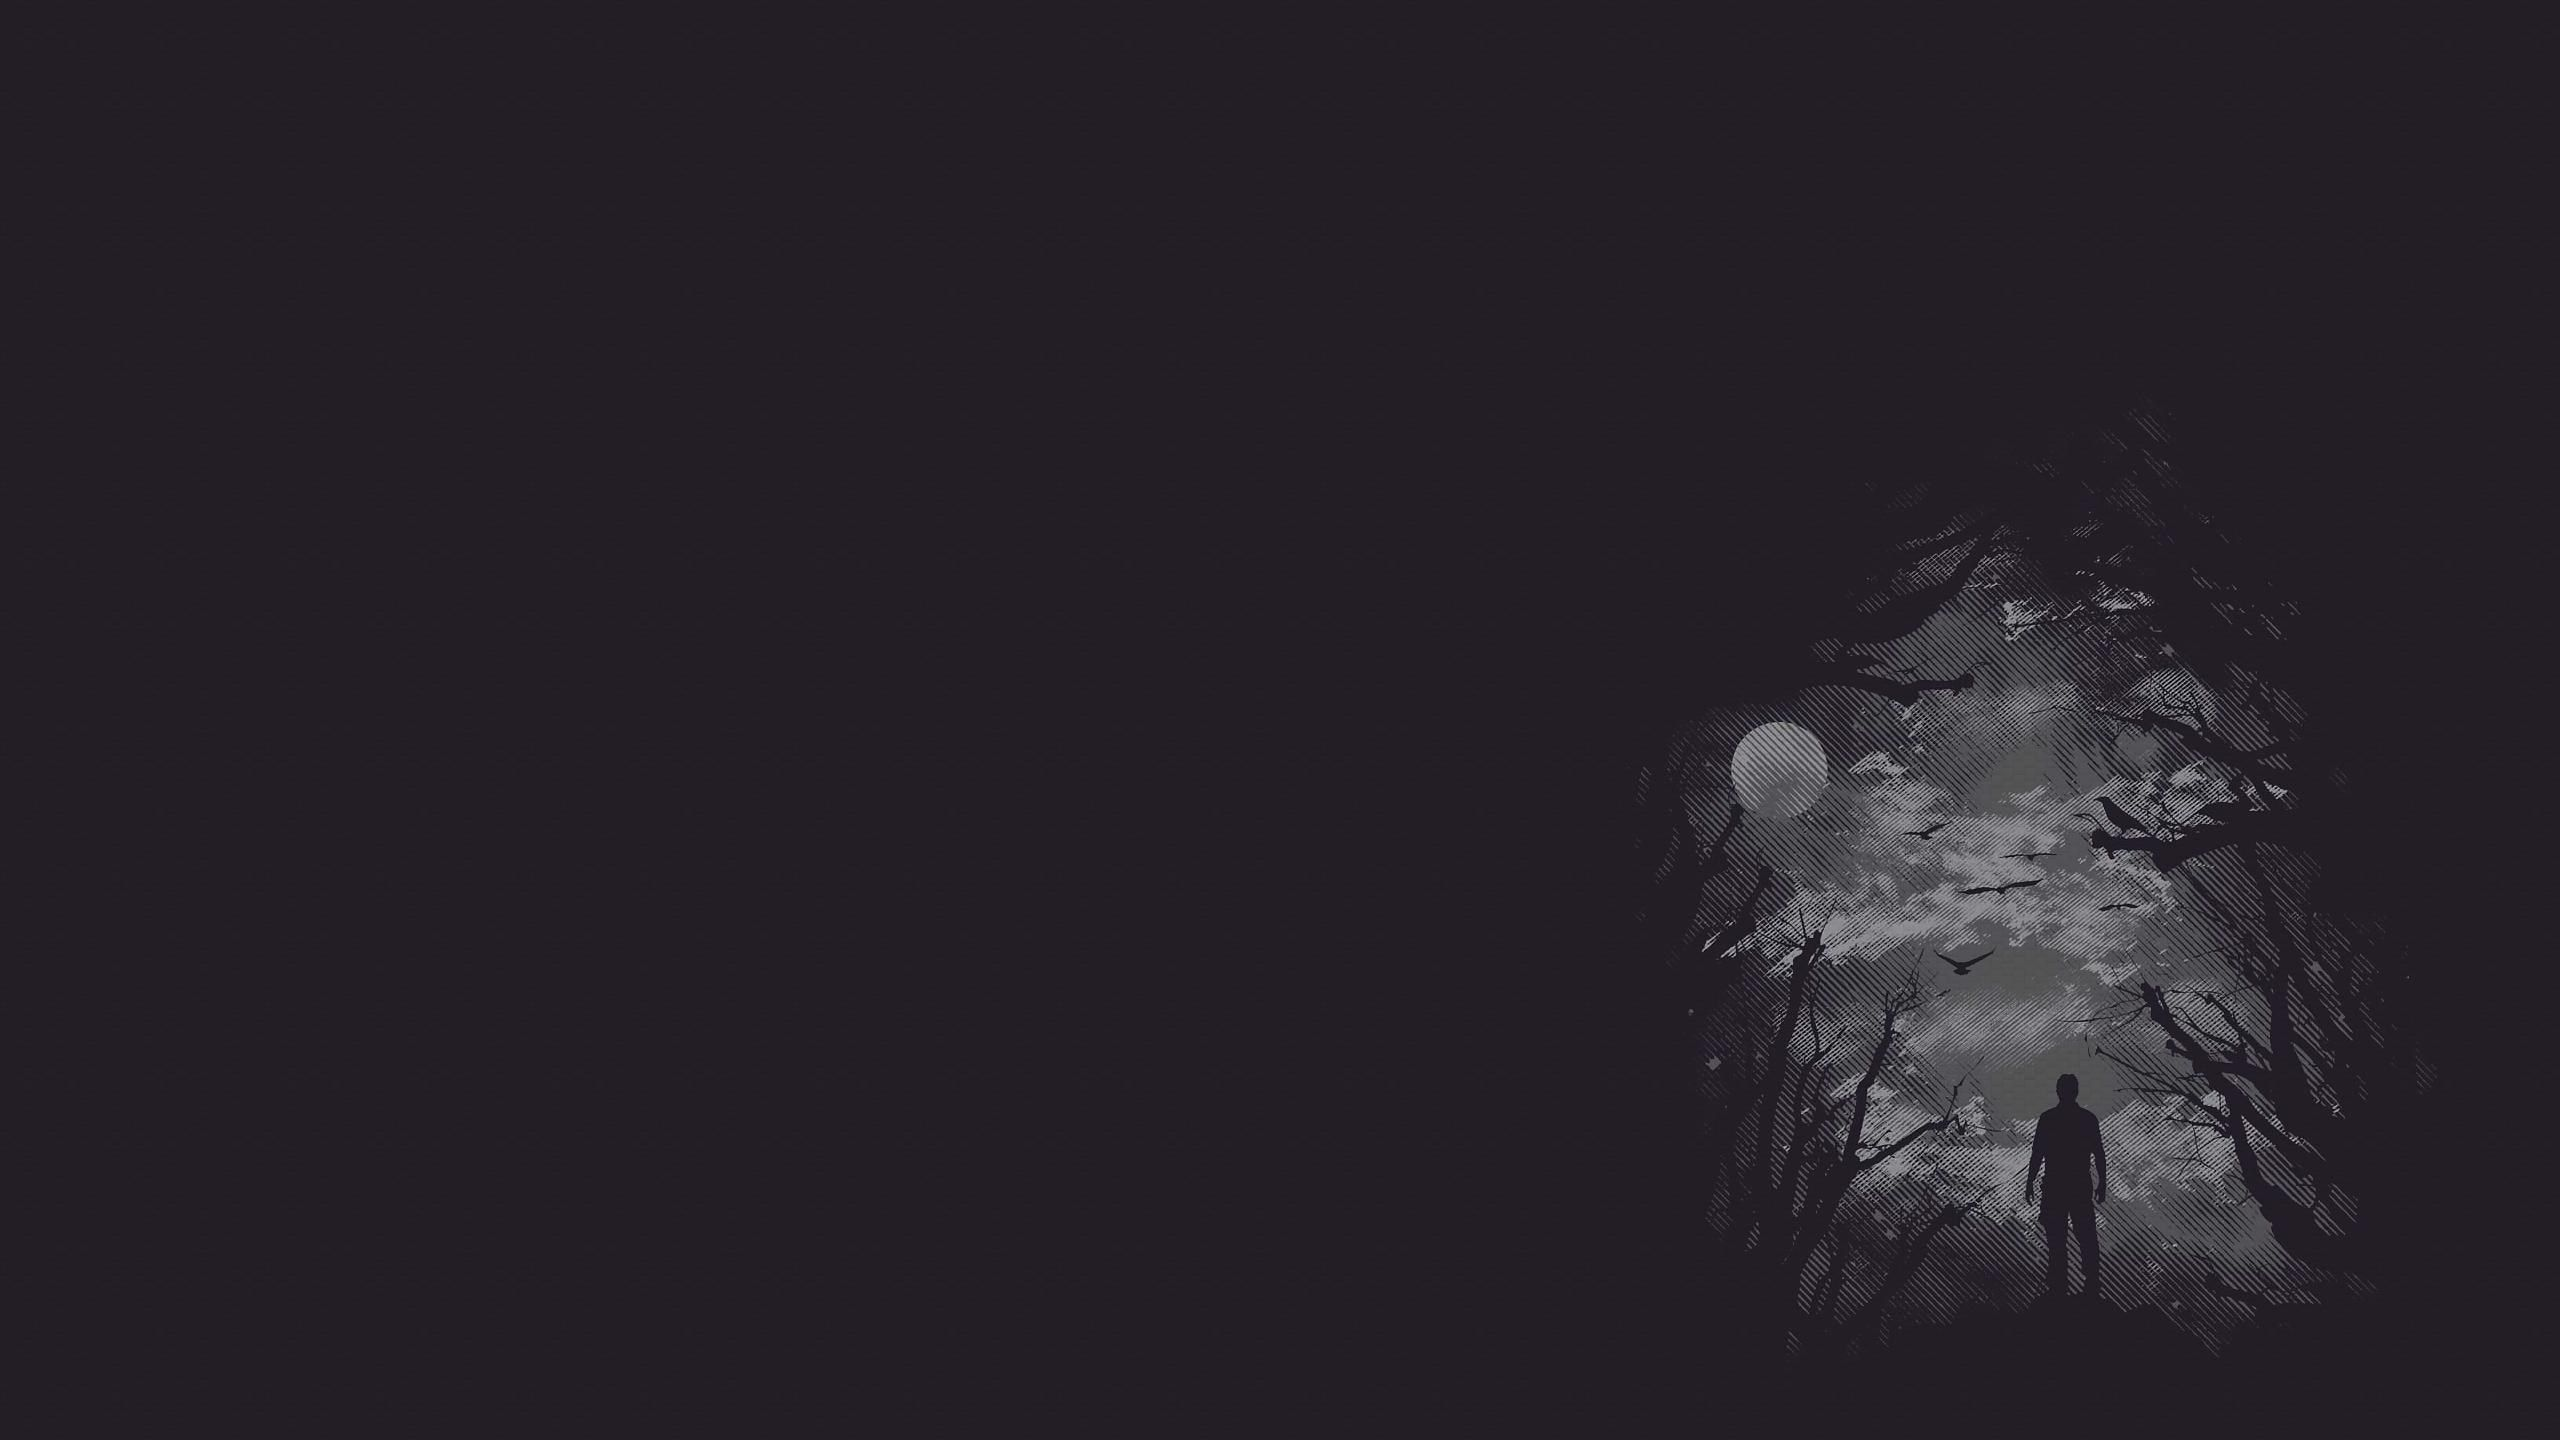 2560x1440 Background High Resolution Night Minimalist Desktop